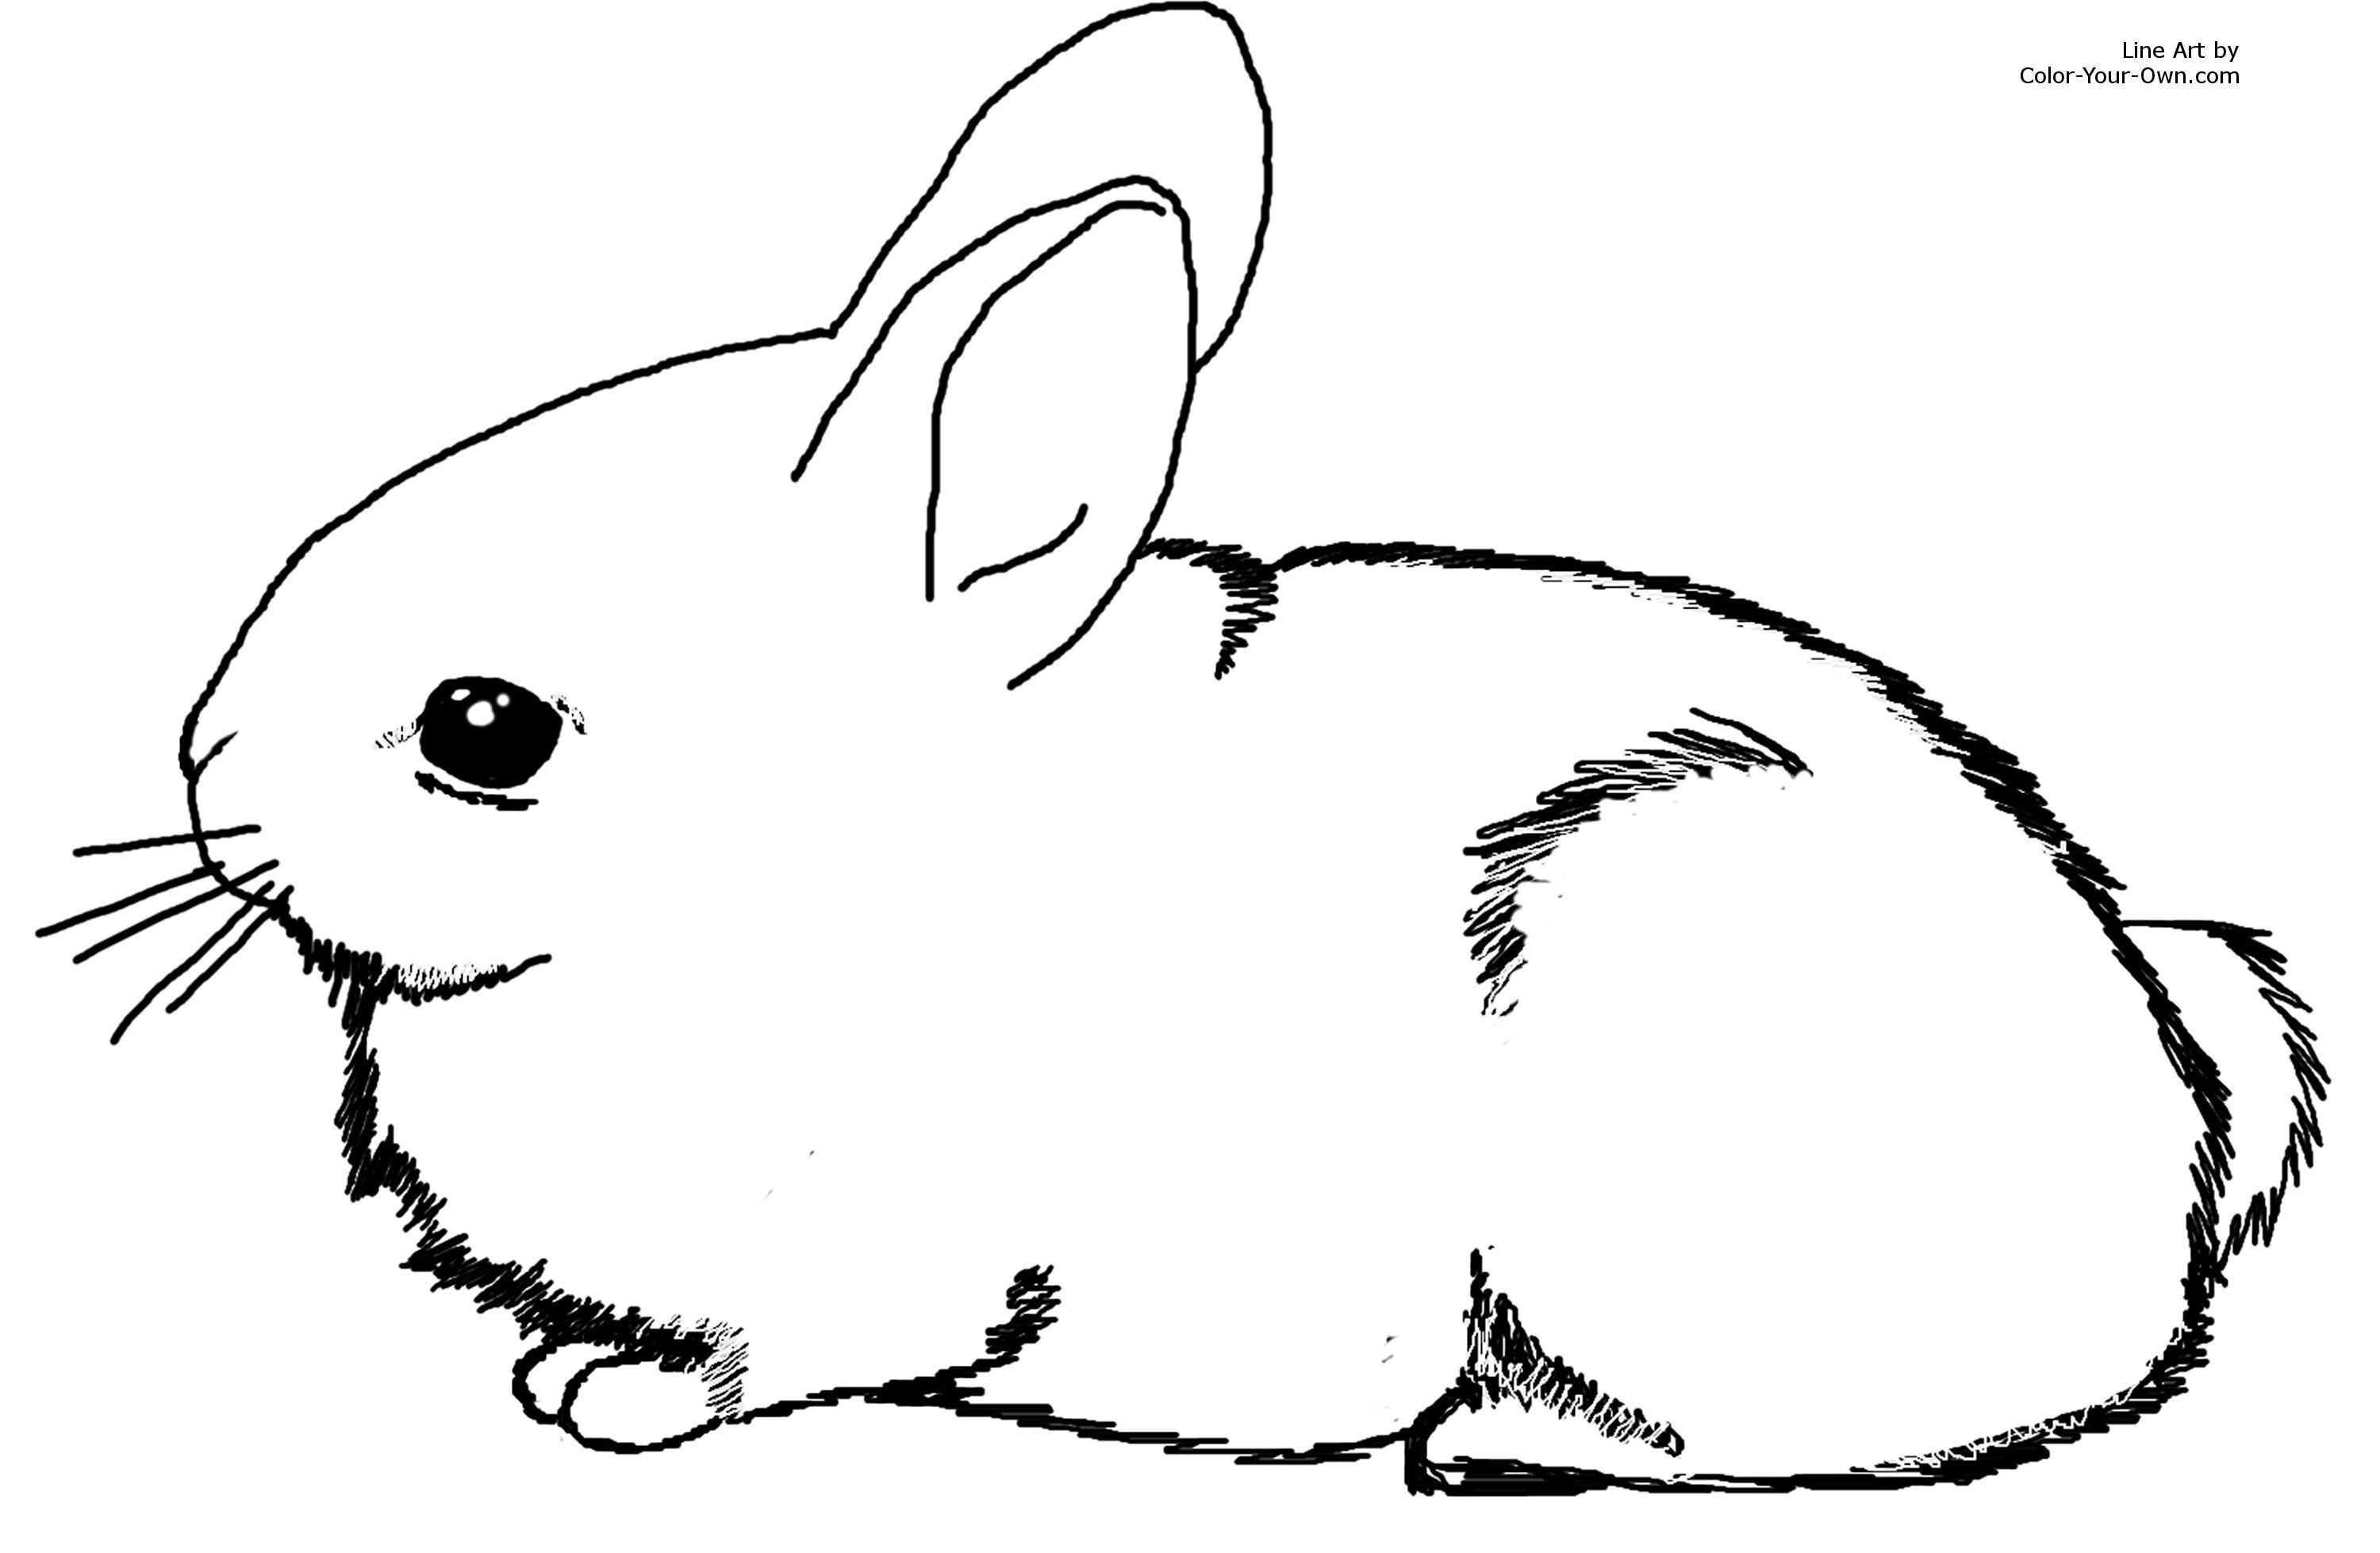 Free Printable Bunny Rabbit Coloring Pages For Kids To Print And - Free Printable Bunny Pictures